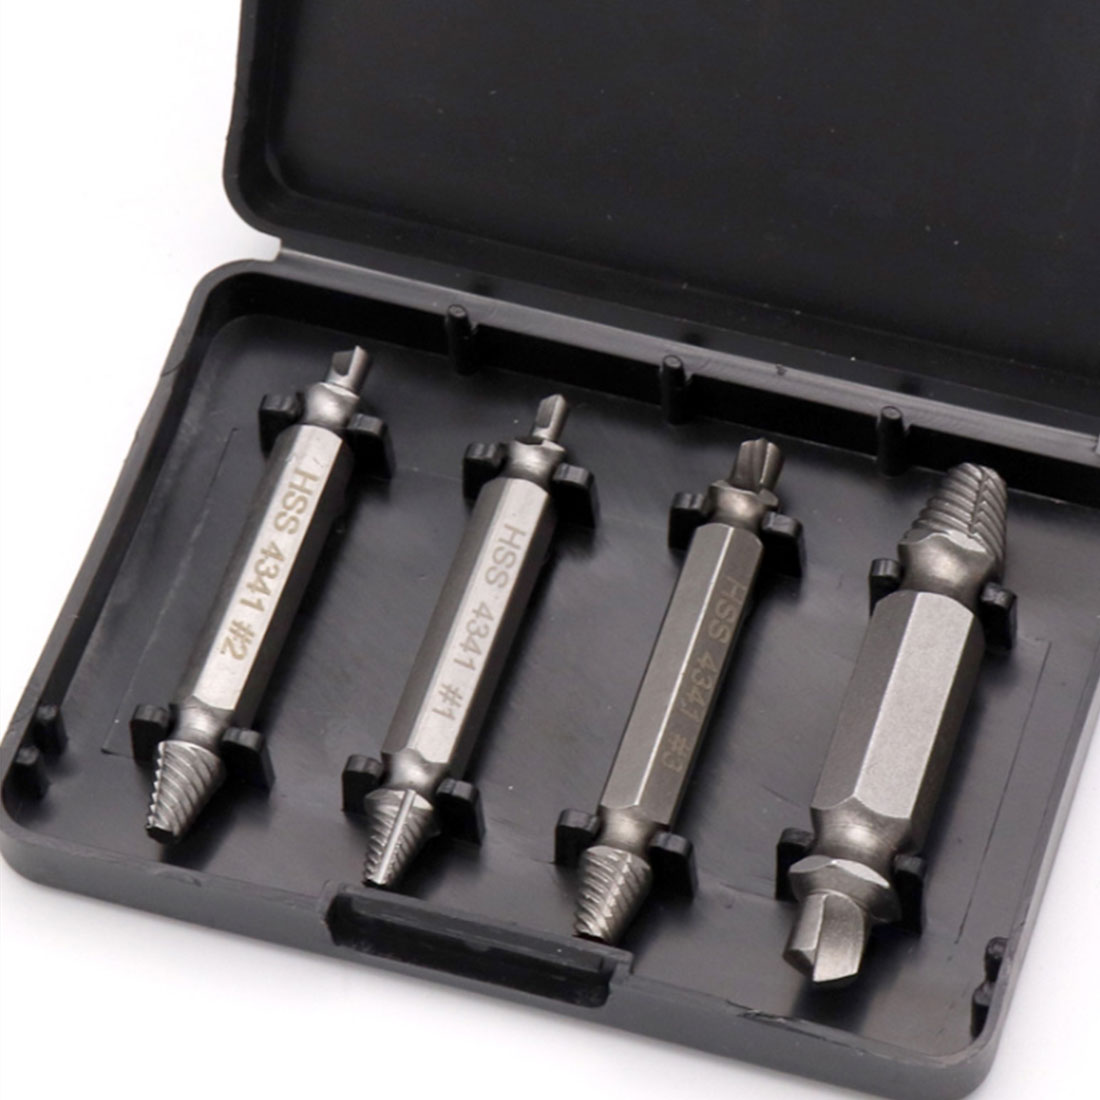 4pcs HSS Double Side Damaged Screw Extractor Drill Bits Set Tools Out Demolition Drill Bit Power Tools 1 #, 2 #, 3 #, 4 #